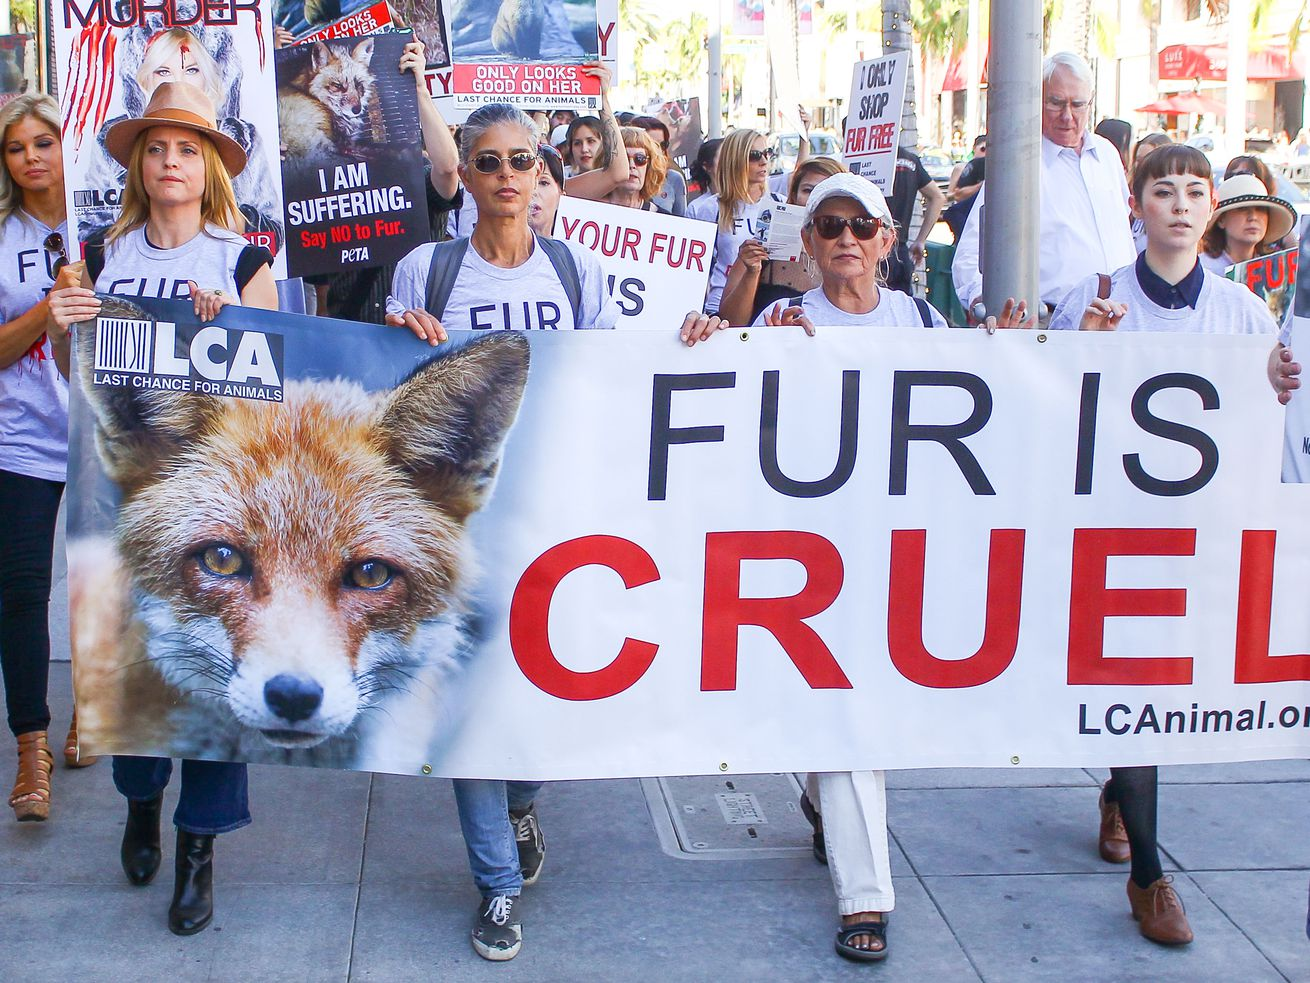 Actress Mena Suvari, far left, marches with protesters at an anti-fur demonstration in Los Angeles in 2017.